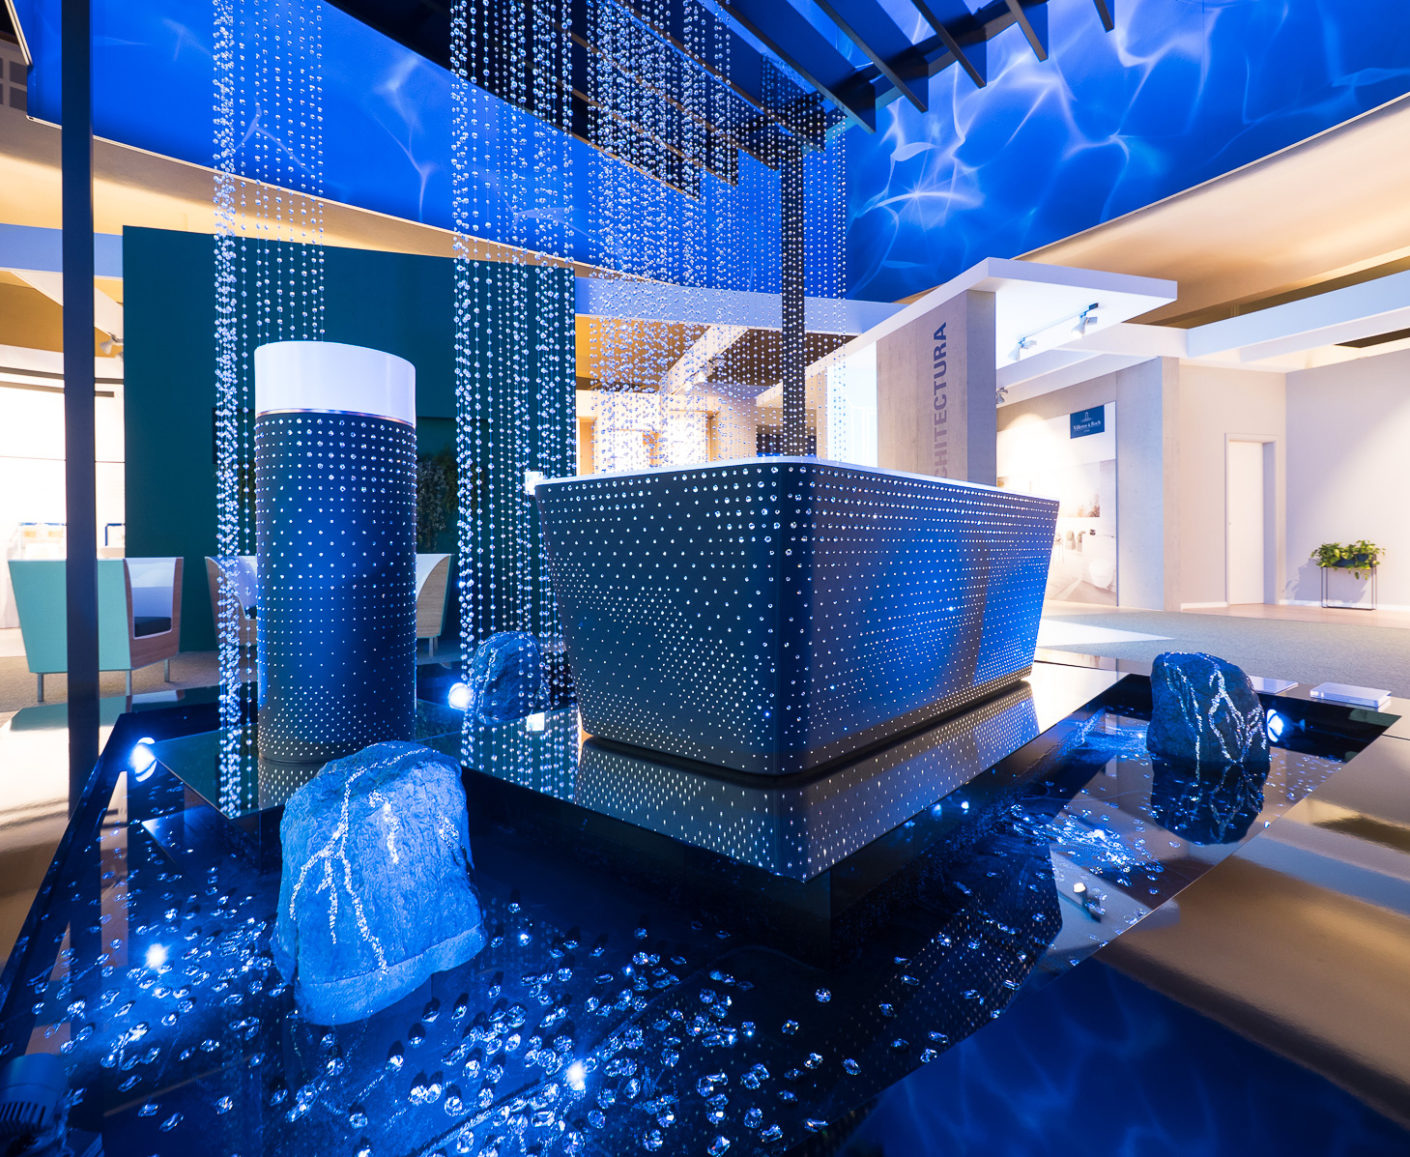 Luxury in the bathroom: The Chinese designer Steve Leung let the bathroom ceramic by Villeroy & Boch seductively sparkle with Swarovski crystals.